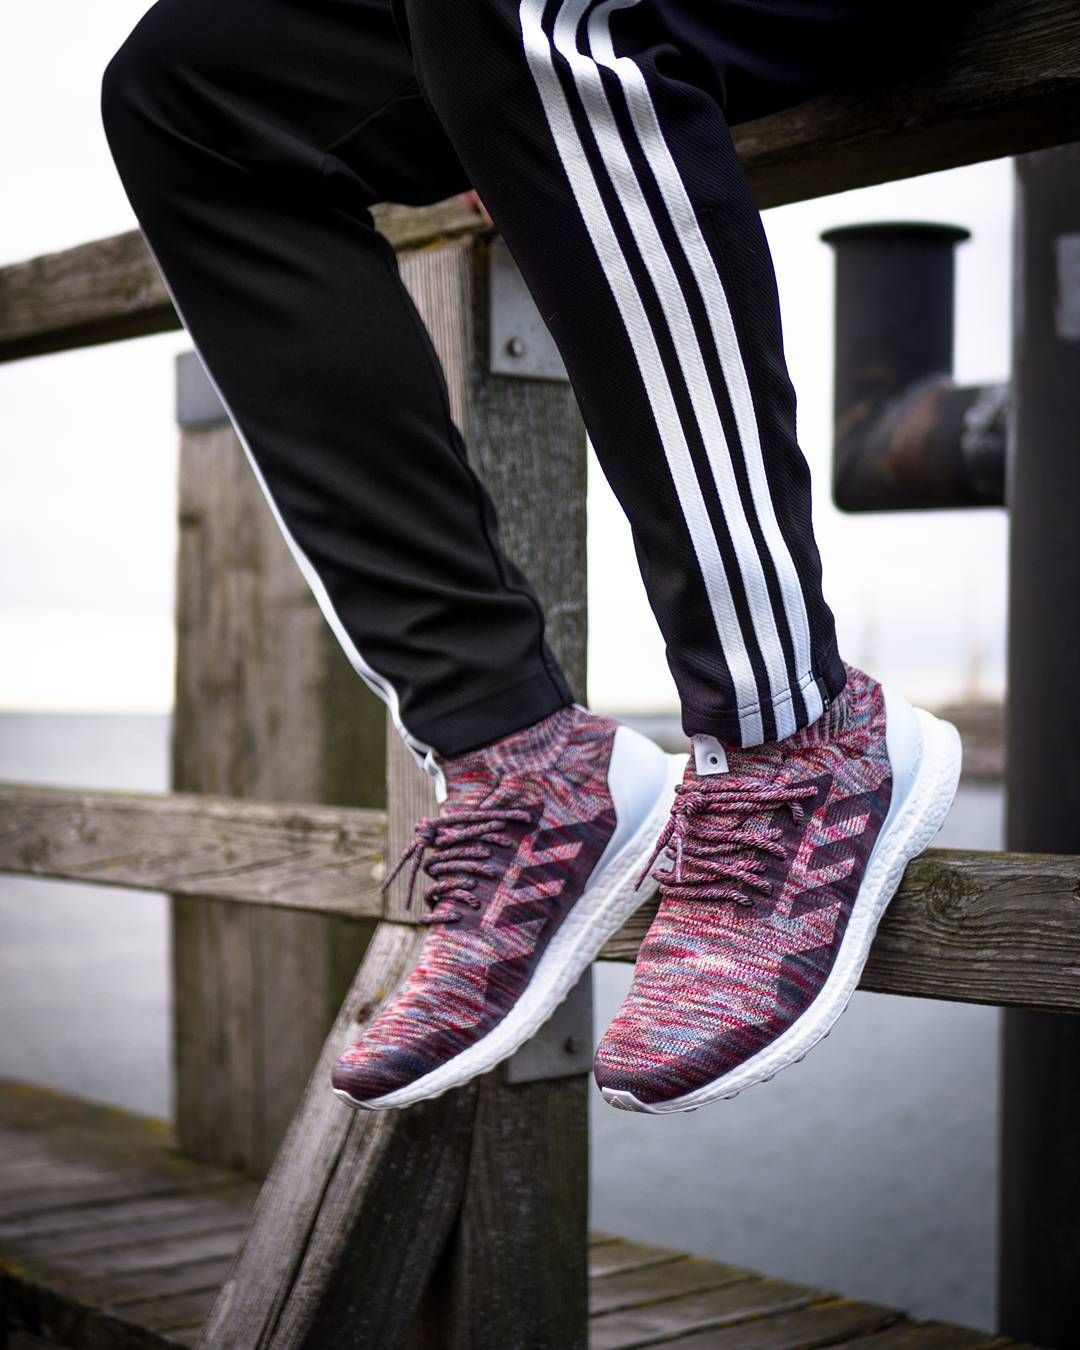 best website 65a9a 12e5d Ronnie Fieg Teases His Upcoming Multicolor Primeknit adidas Ultraboost Mid    Highsnobiety